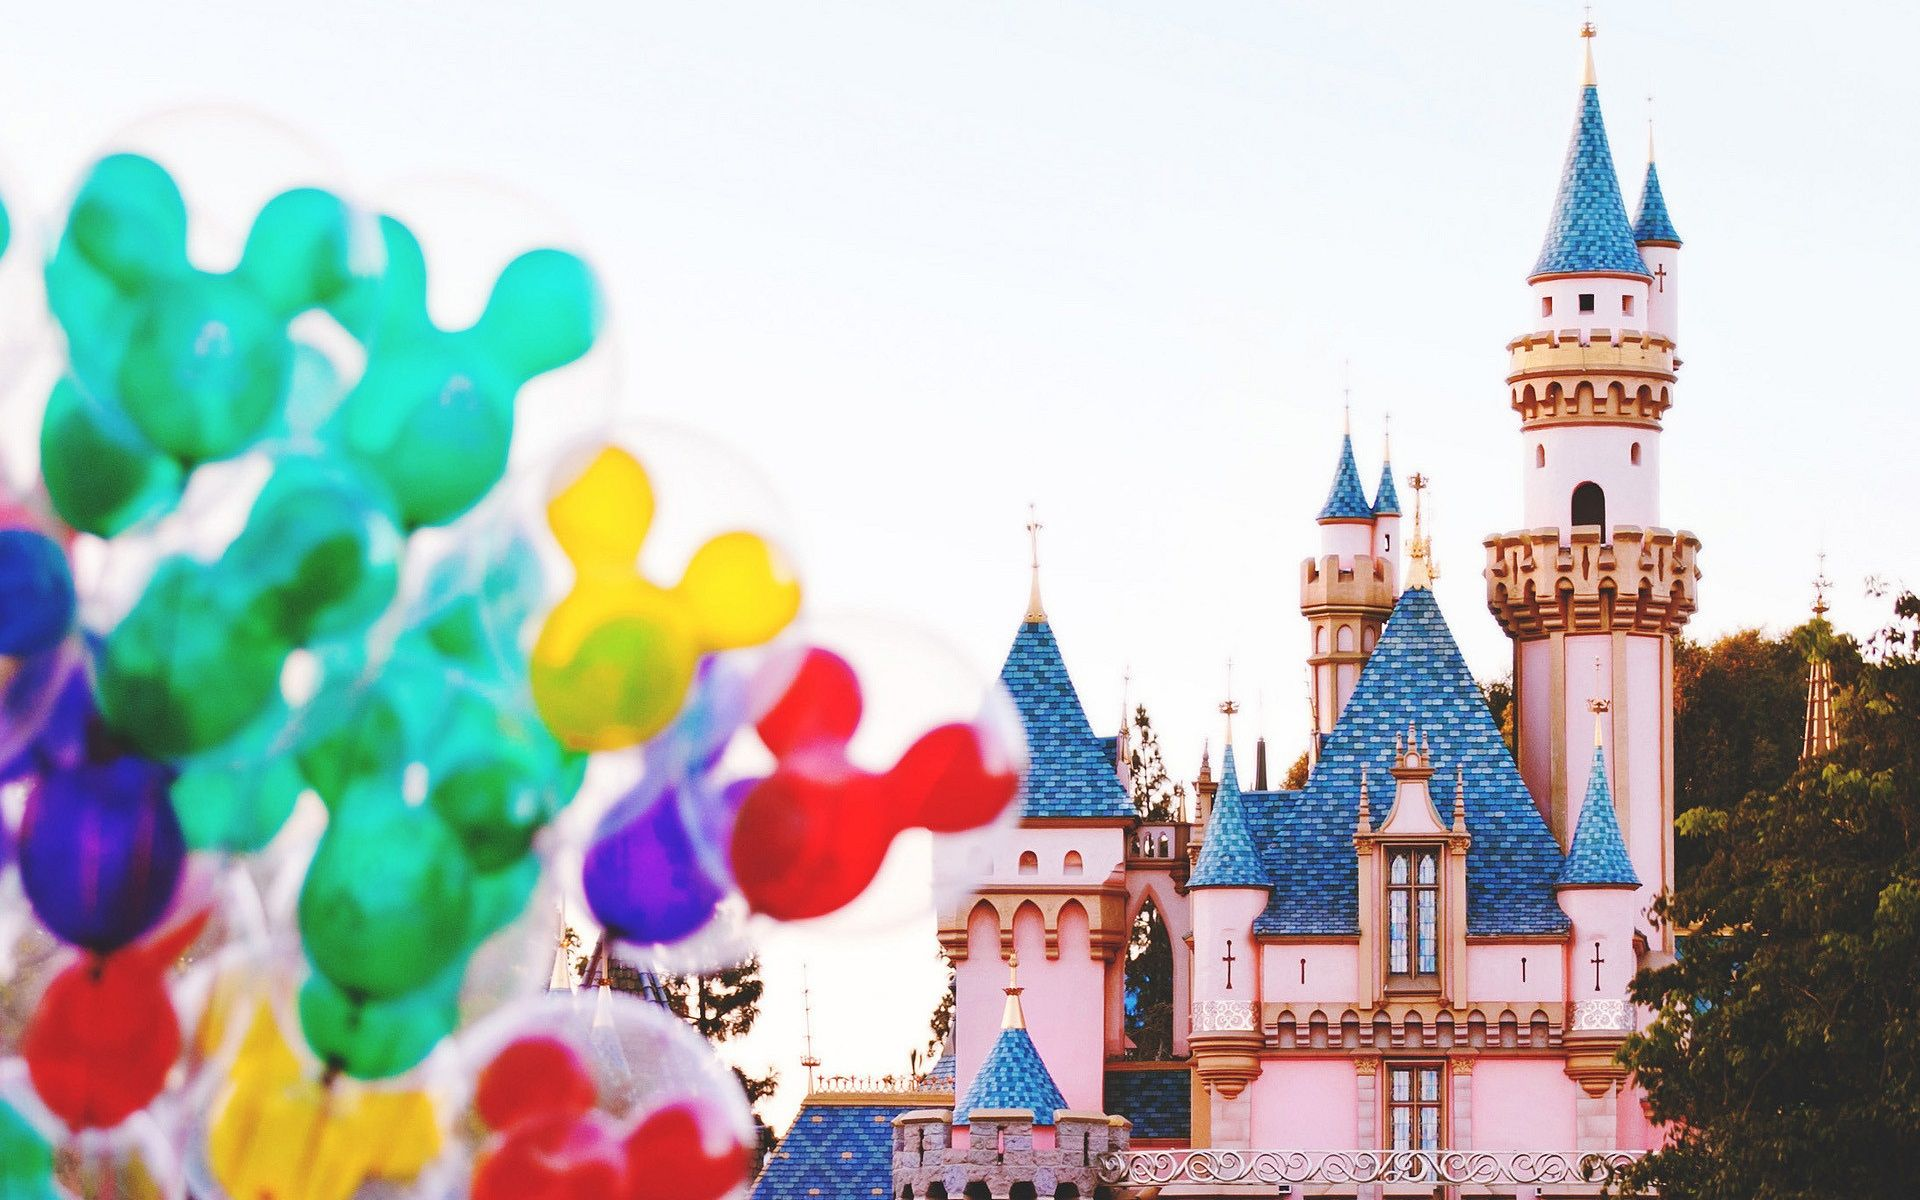 Disney Castle Tumblr Posted By Michelle Tremblay